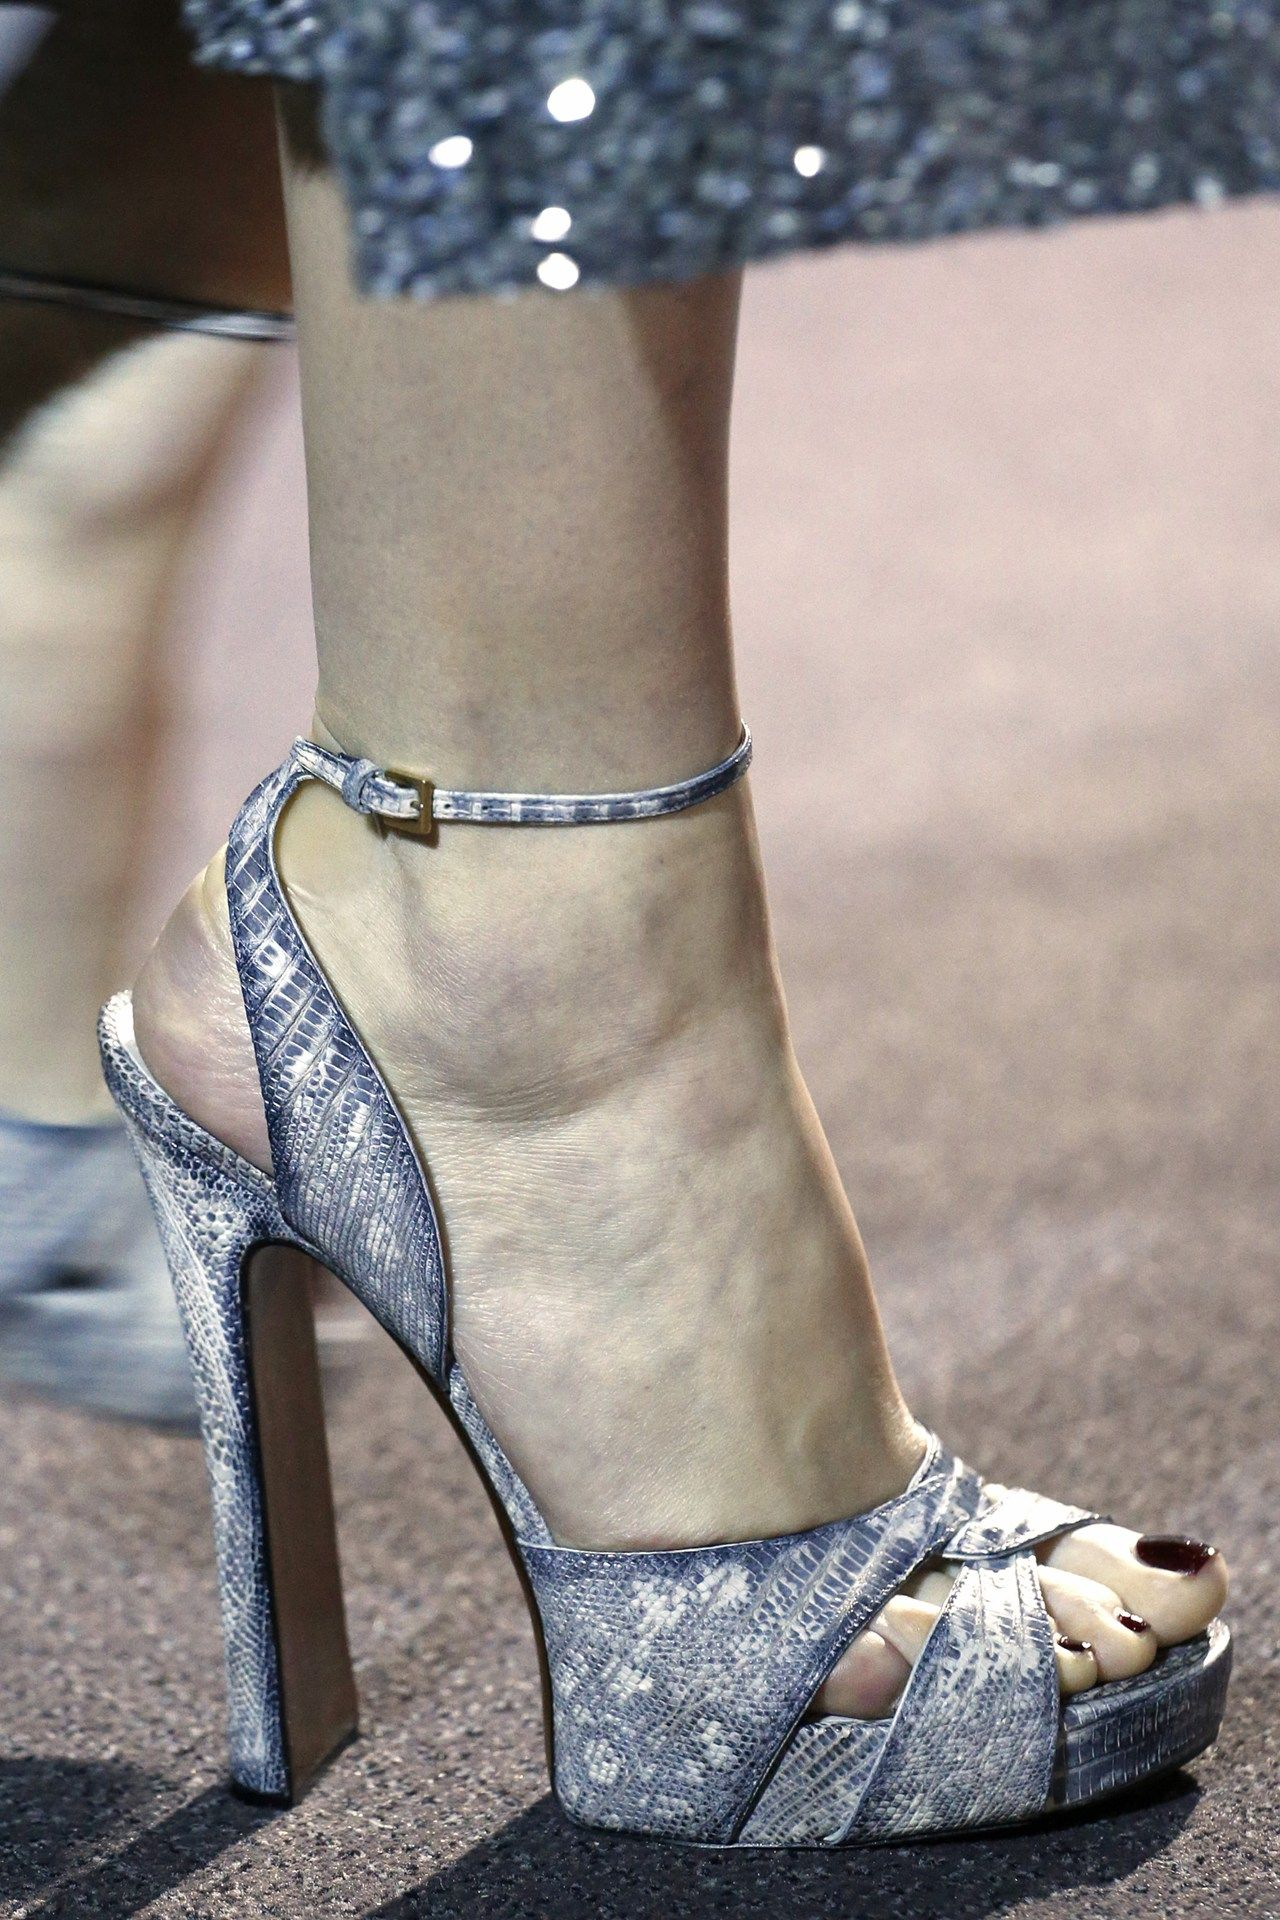 Louis Vuitton Shoes To Take Over